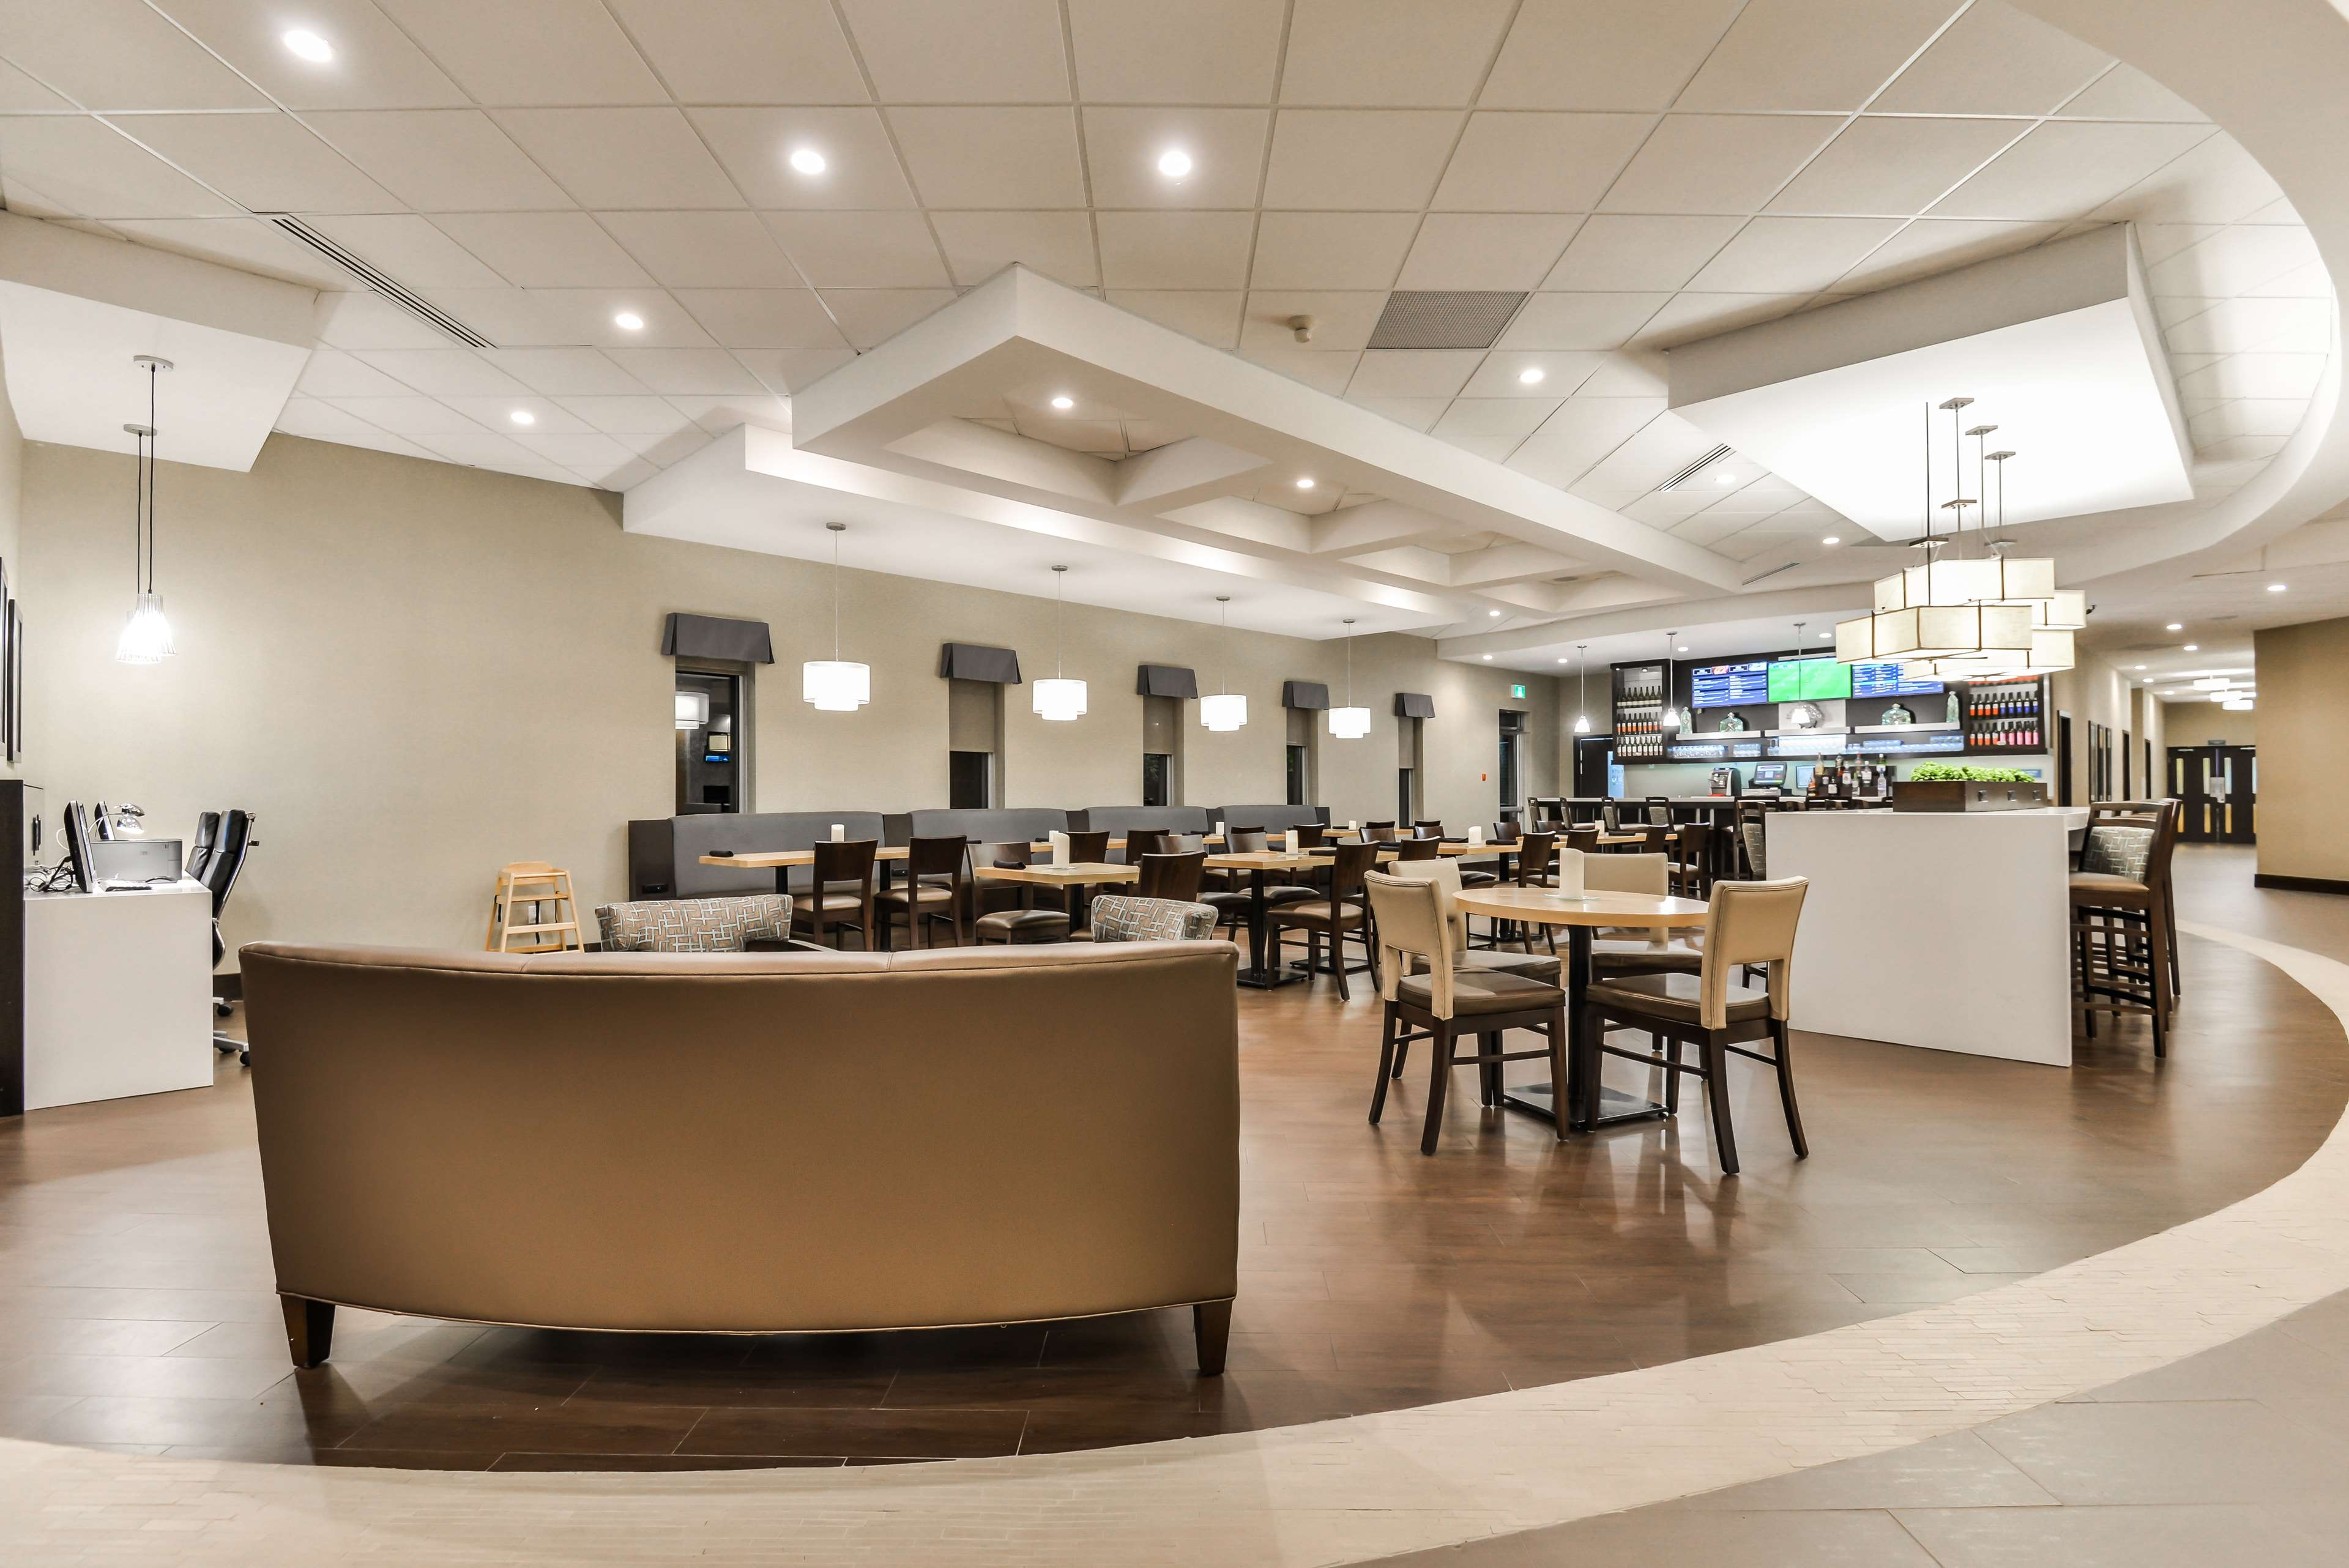 Bistro Seating Area Best Western Plus Leamington Hotel & Conference Centre Leamington (519)326-8646